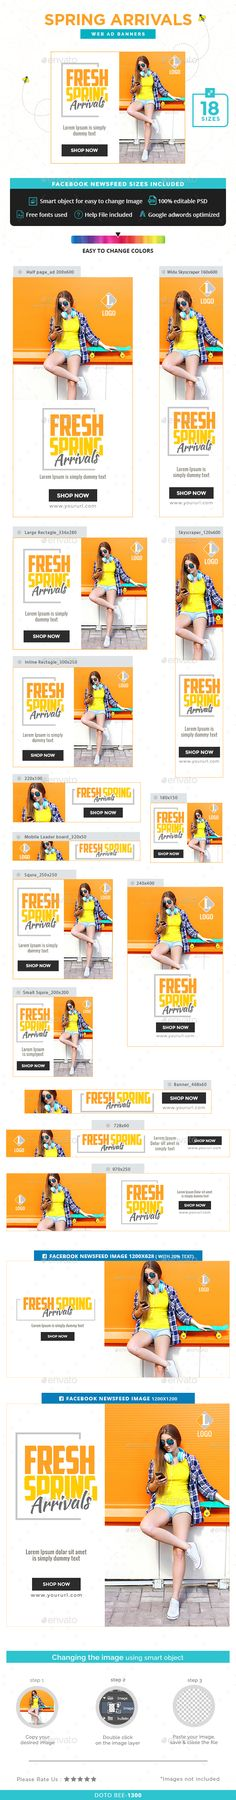 Spring Arrivals Web Banners Template PSD. Download here: http://graphicriver.net/item/spring-arrivals-banners/15701960?ref=ksioks